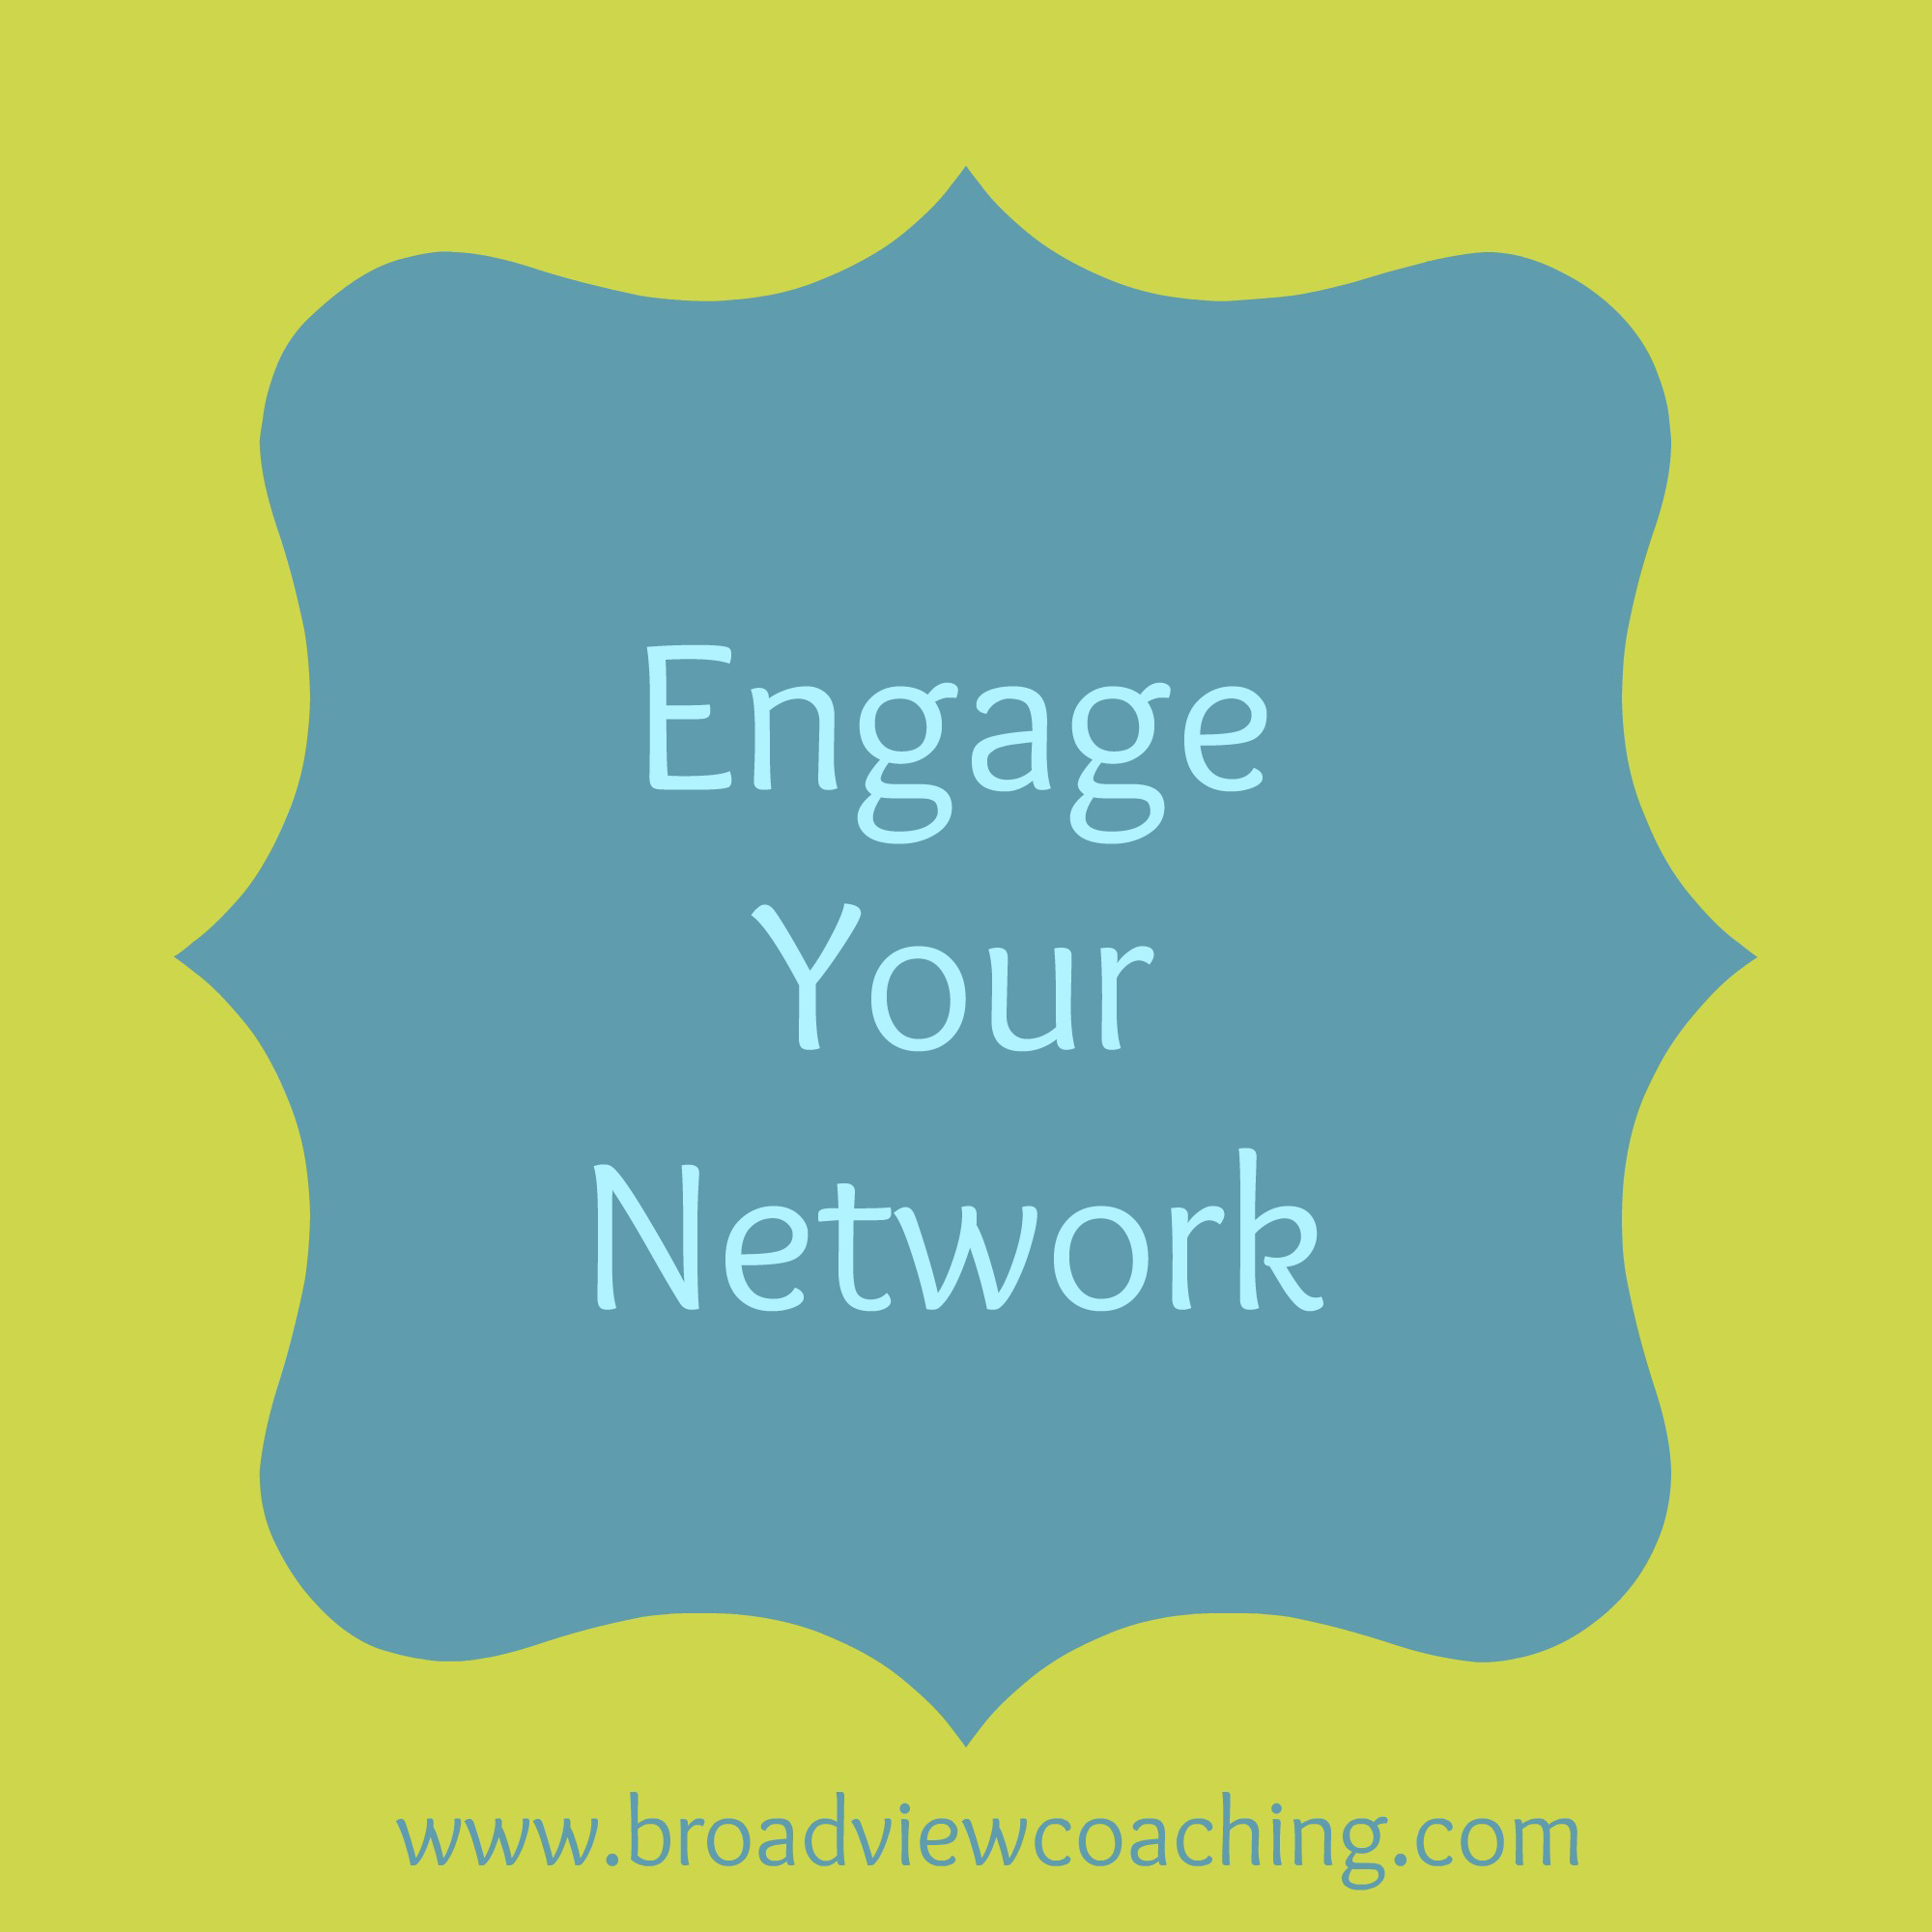 Engage your network